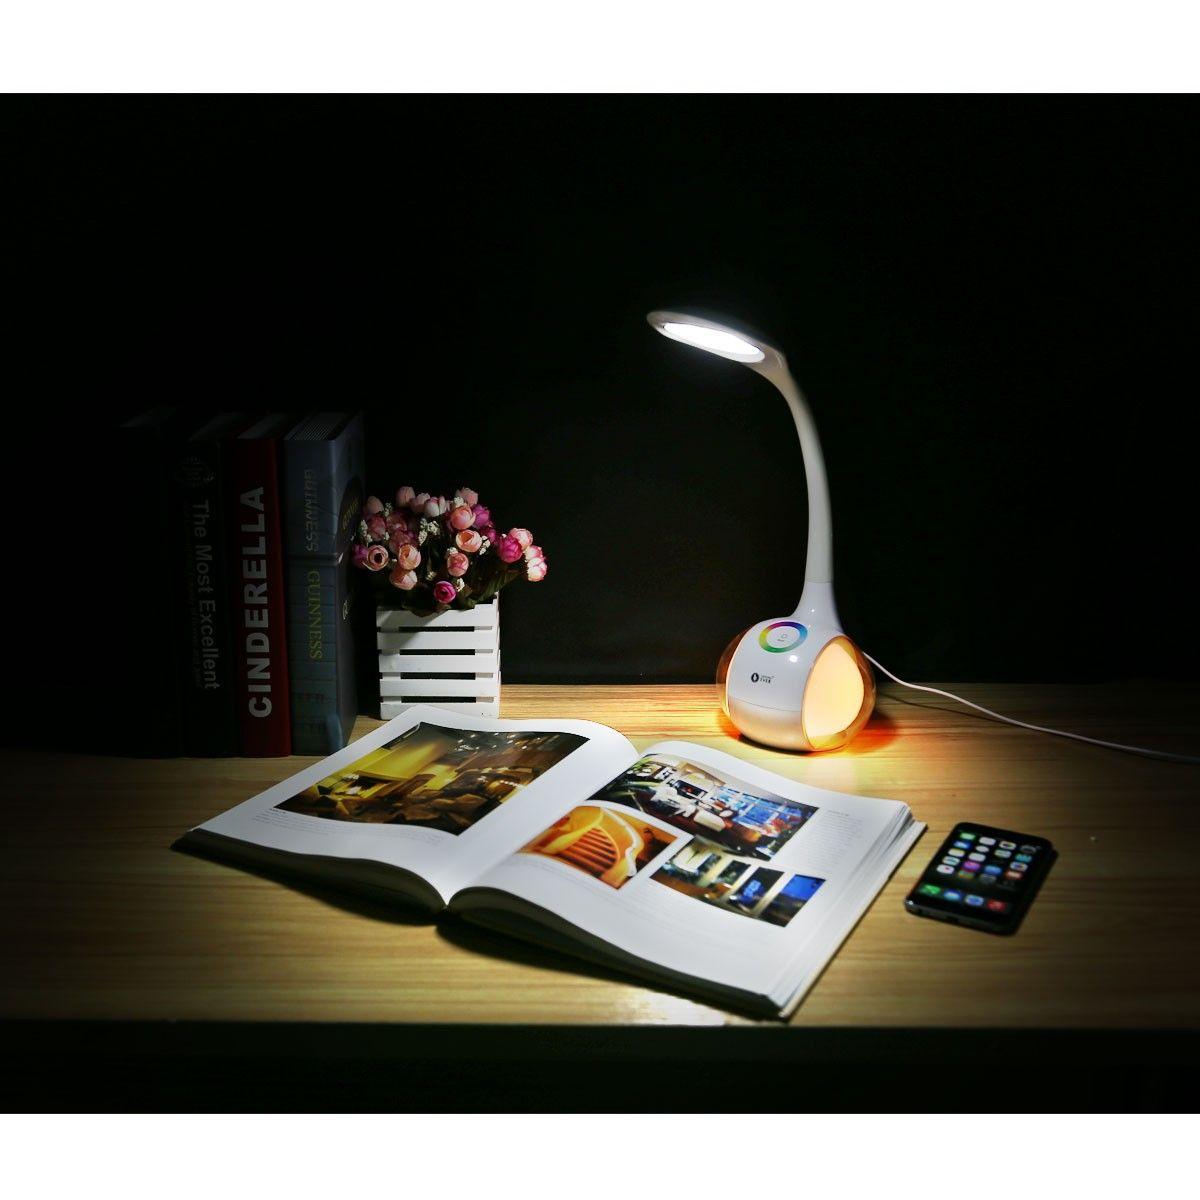 7w Dimmable Led Desk Lamp With Lamp Of Mood Lighting 3 Brightness Levels Full Colors Choice